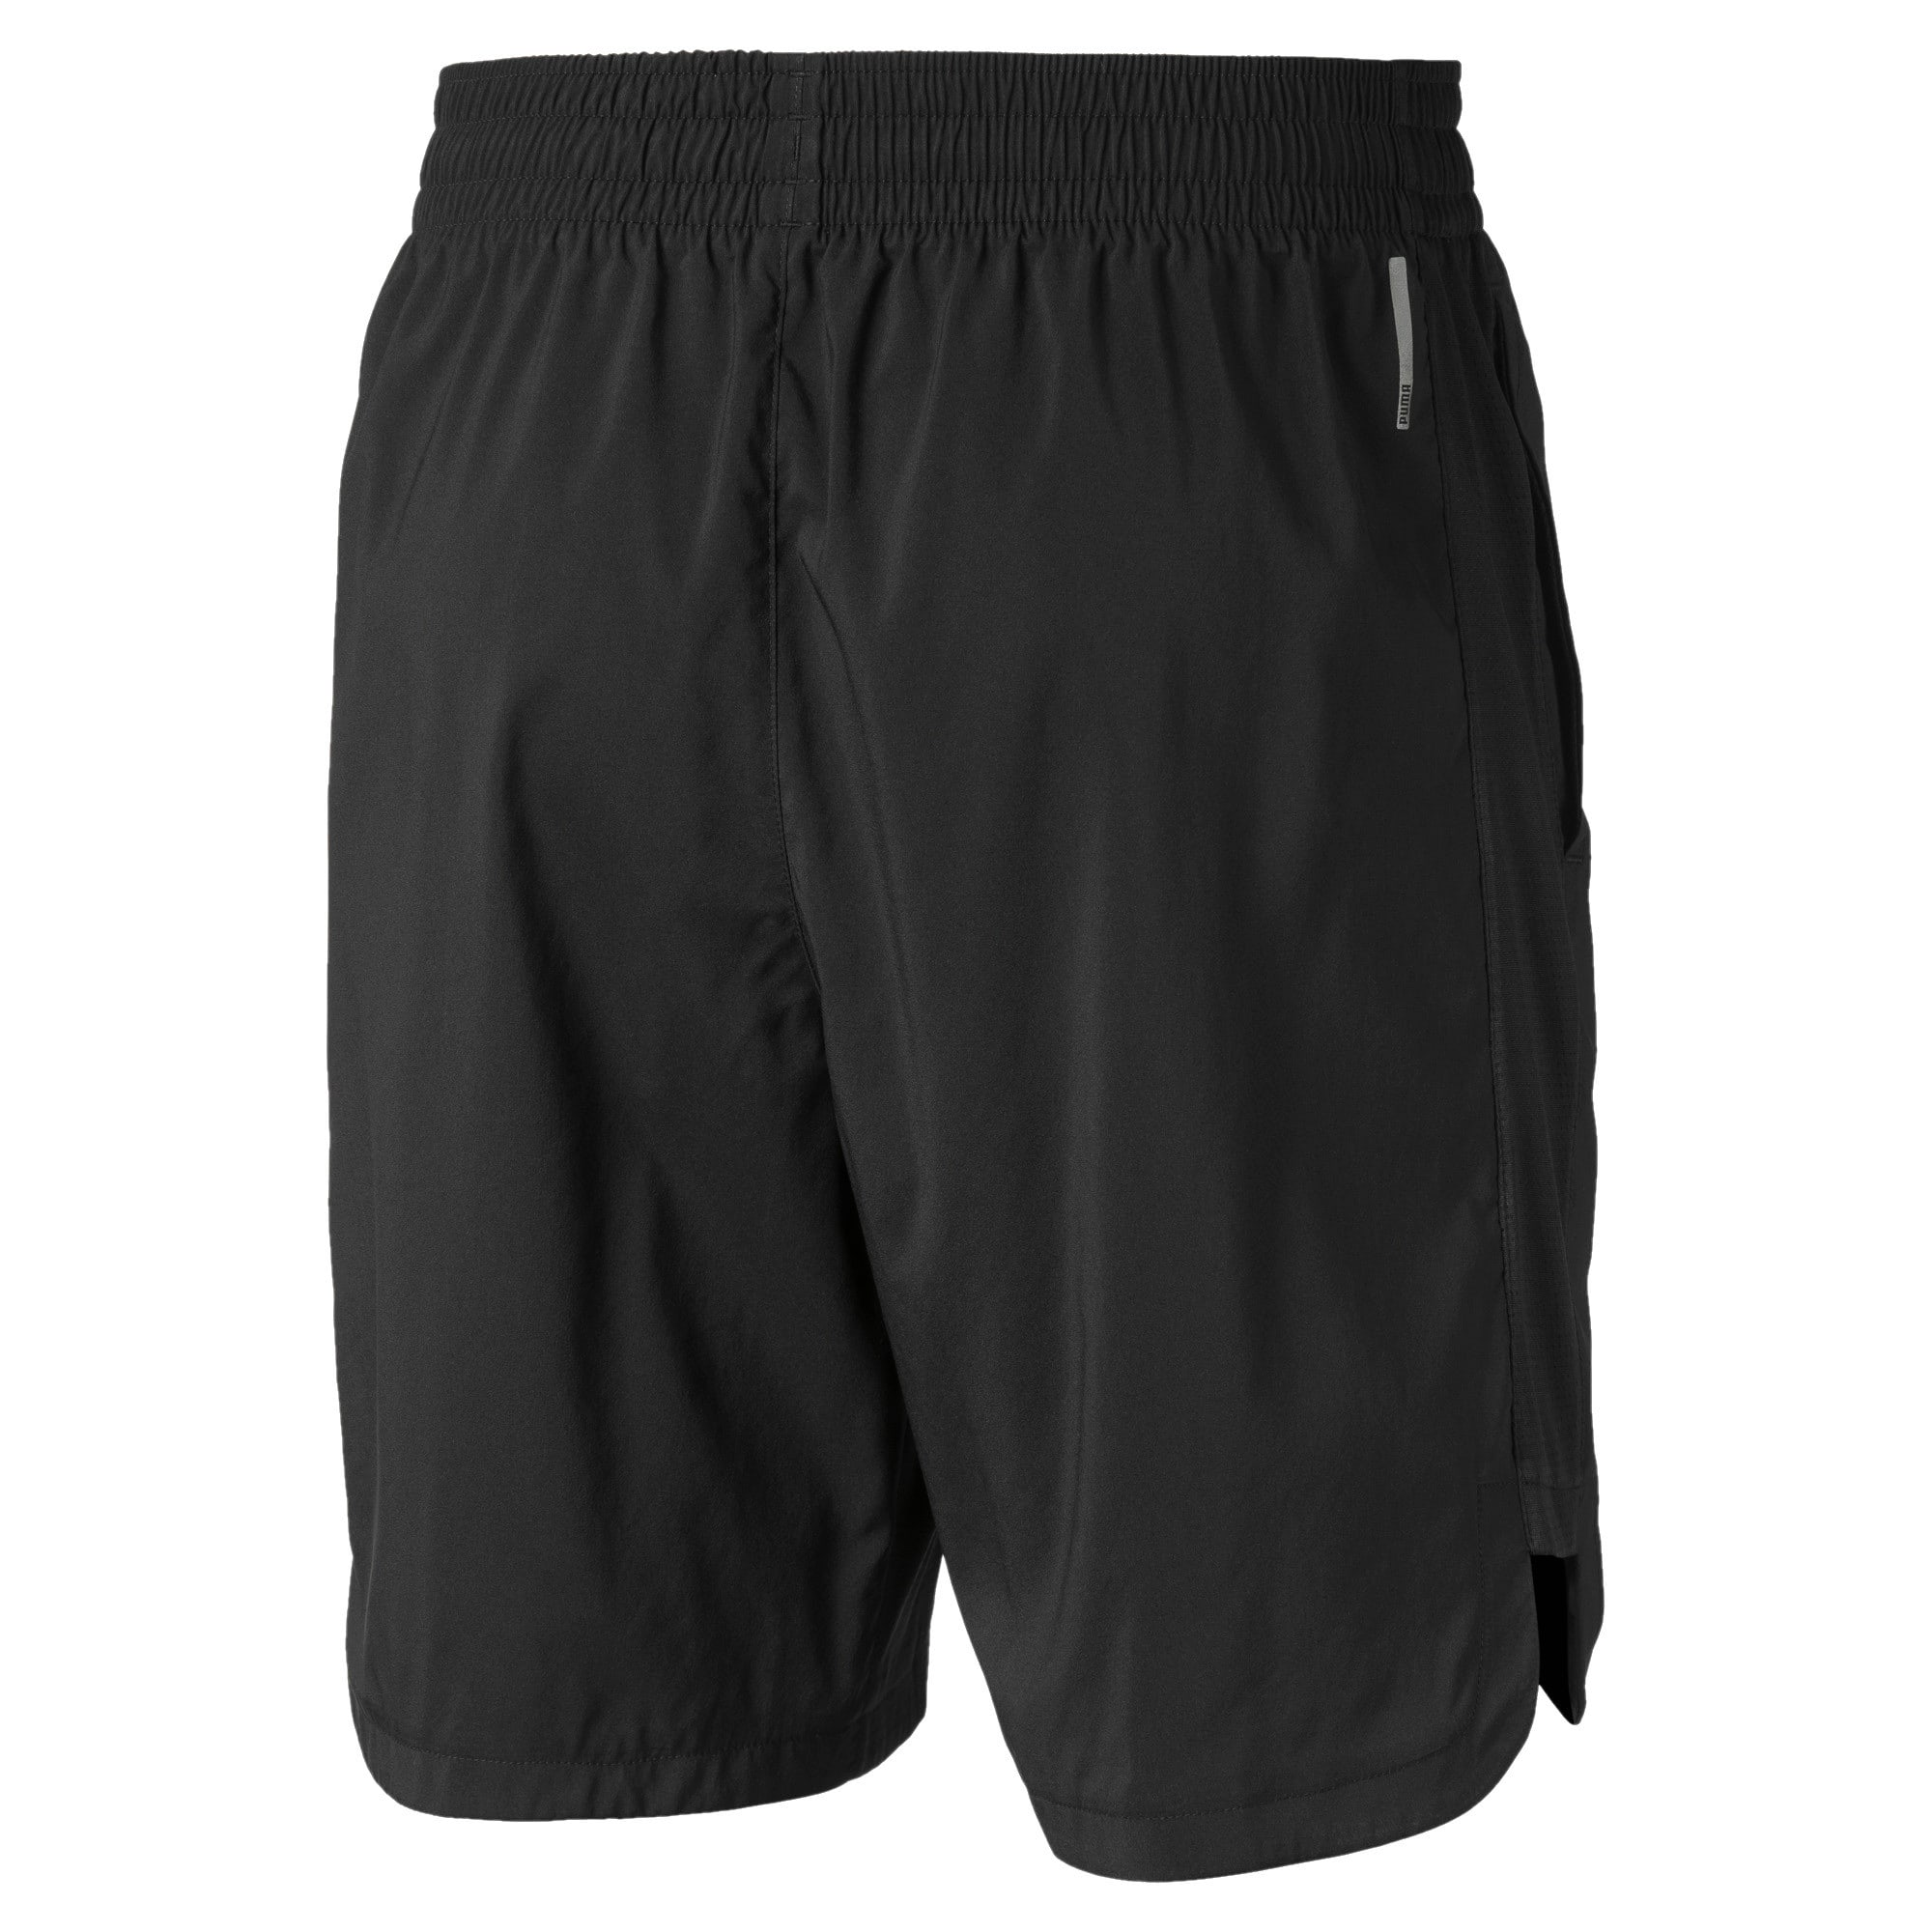 Thumbnail 5 of Woven Men's Training Shorts, Puma Black, medium